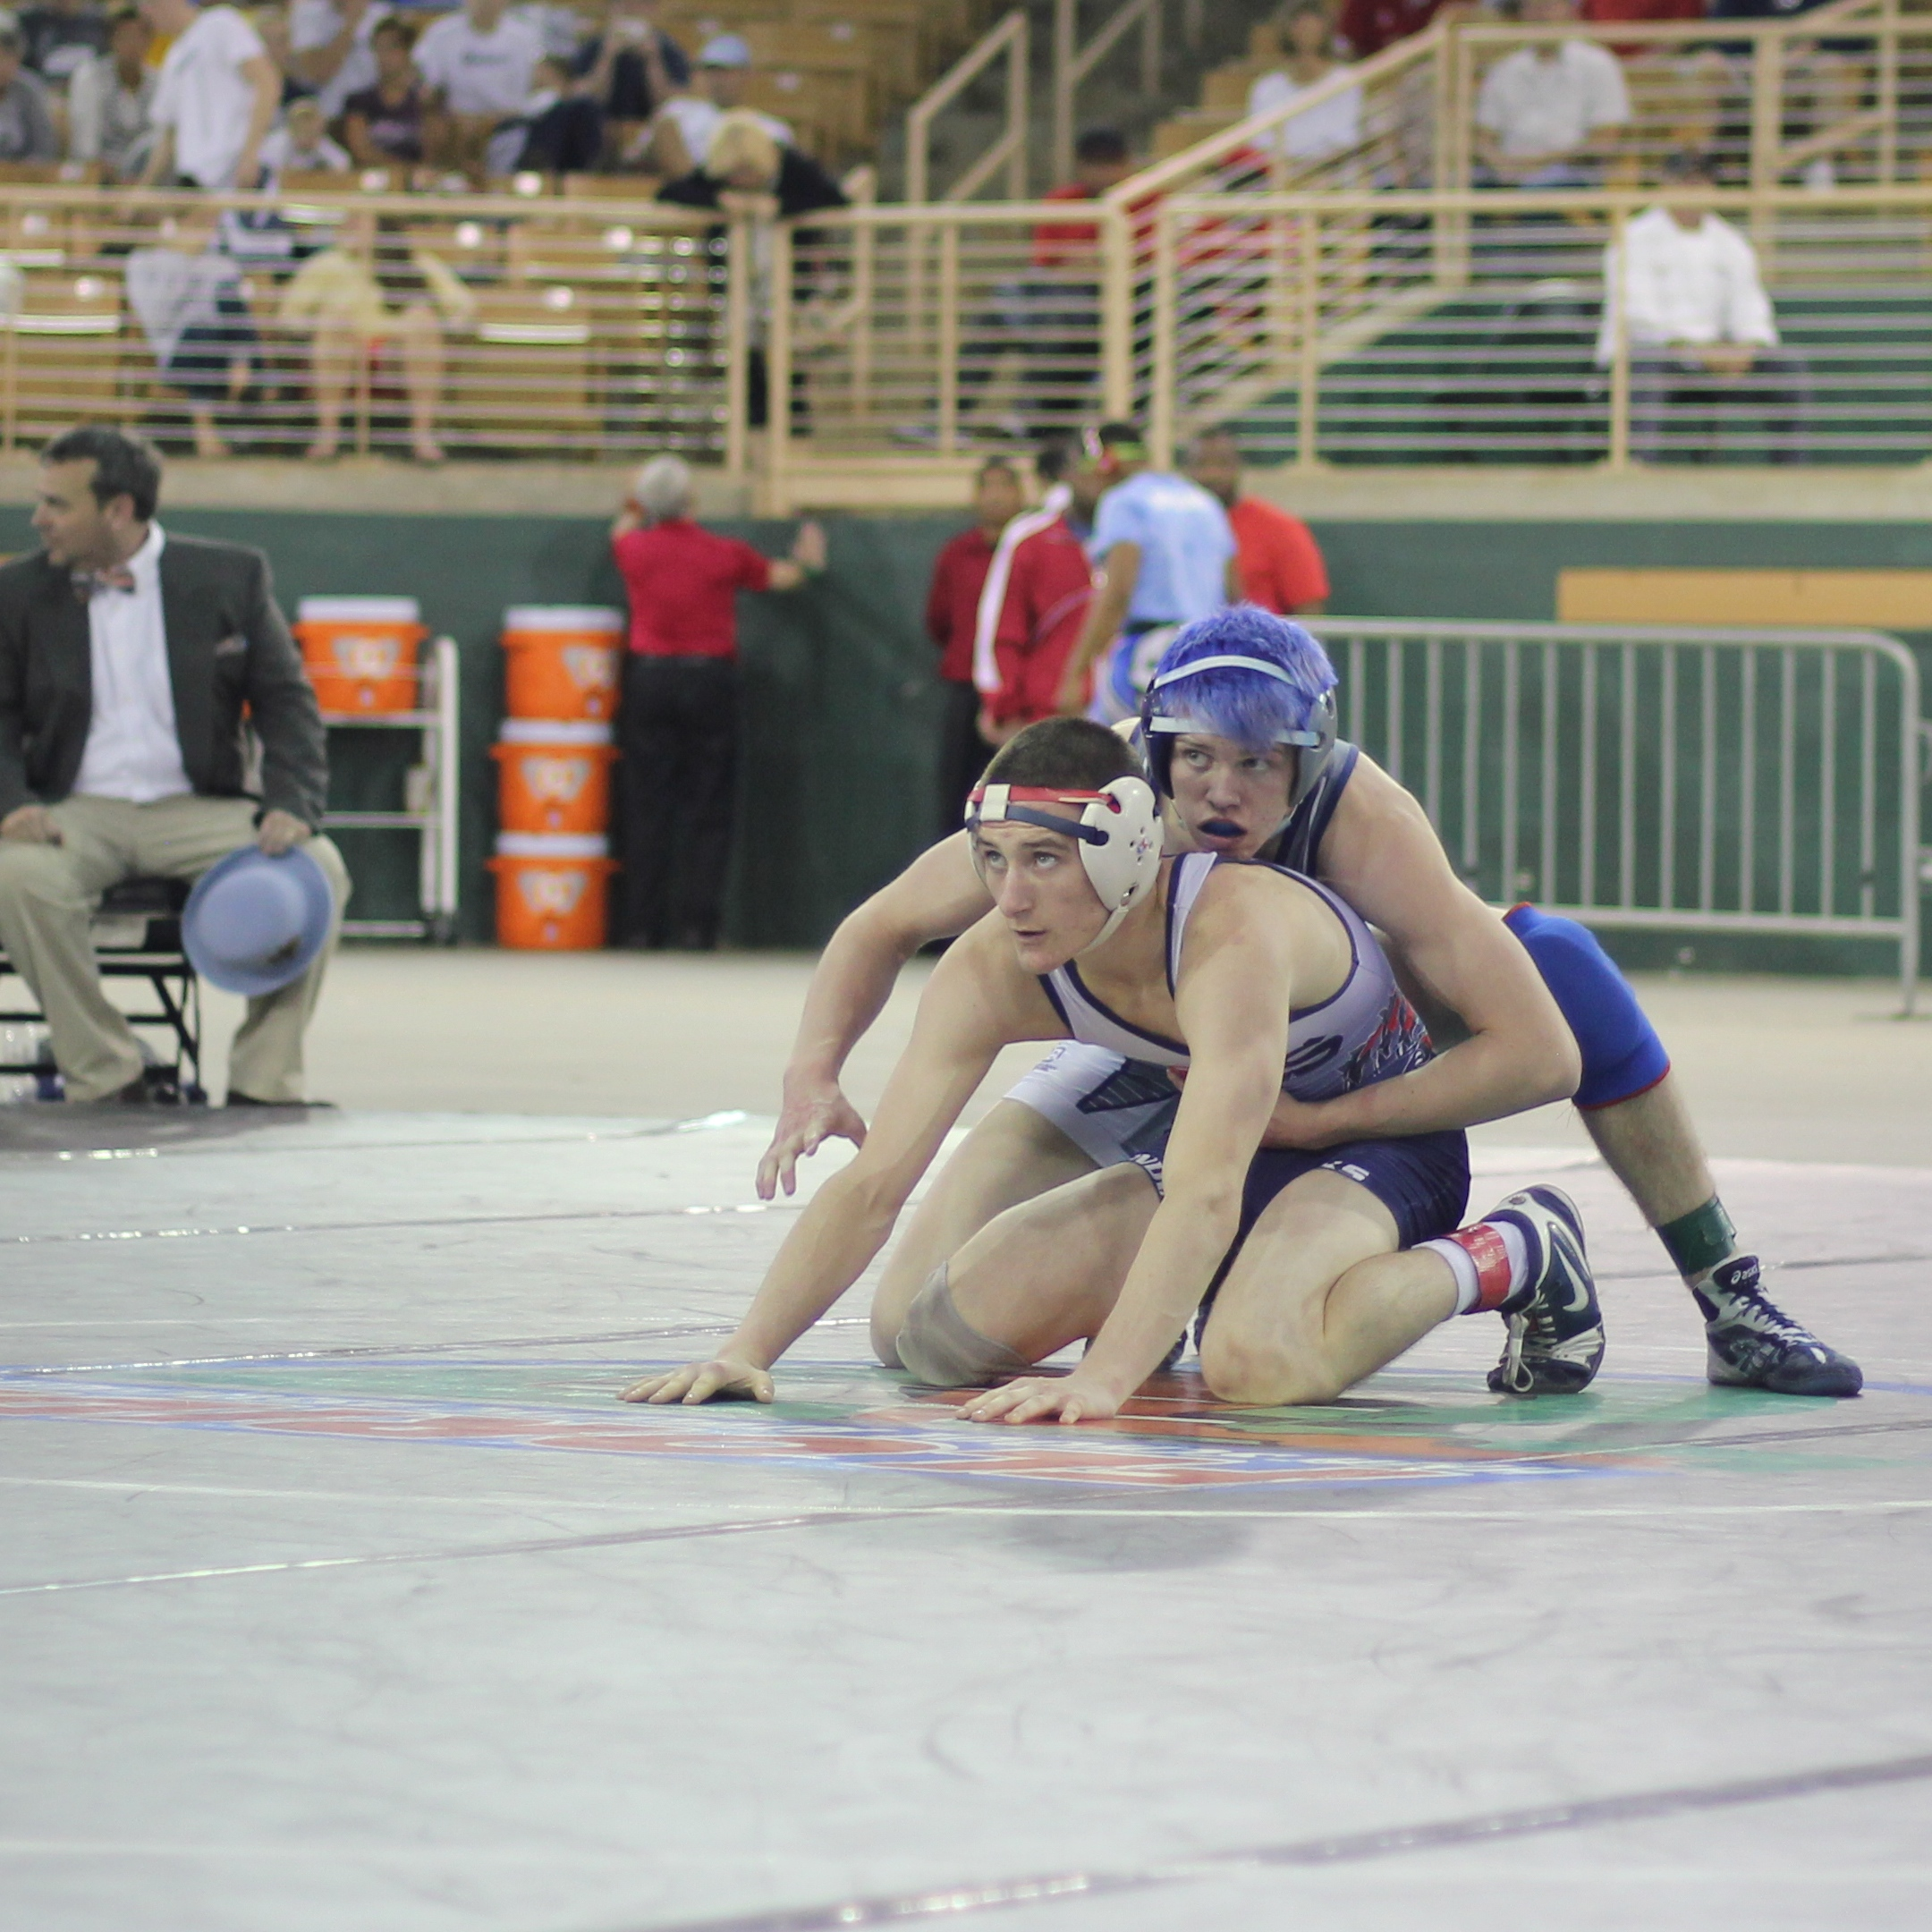 Carlan beat Dugmore 2-1 to win the 2015 1A 132 lb.title